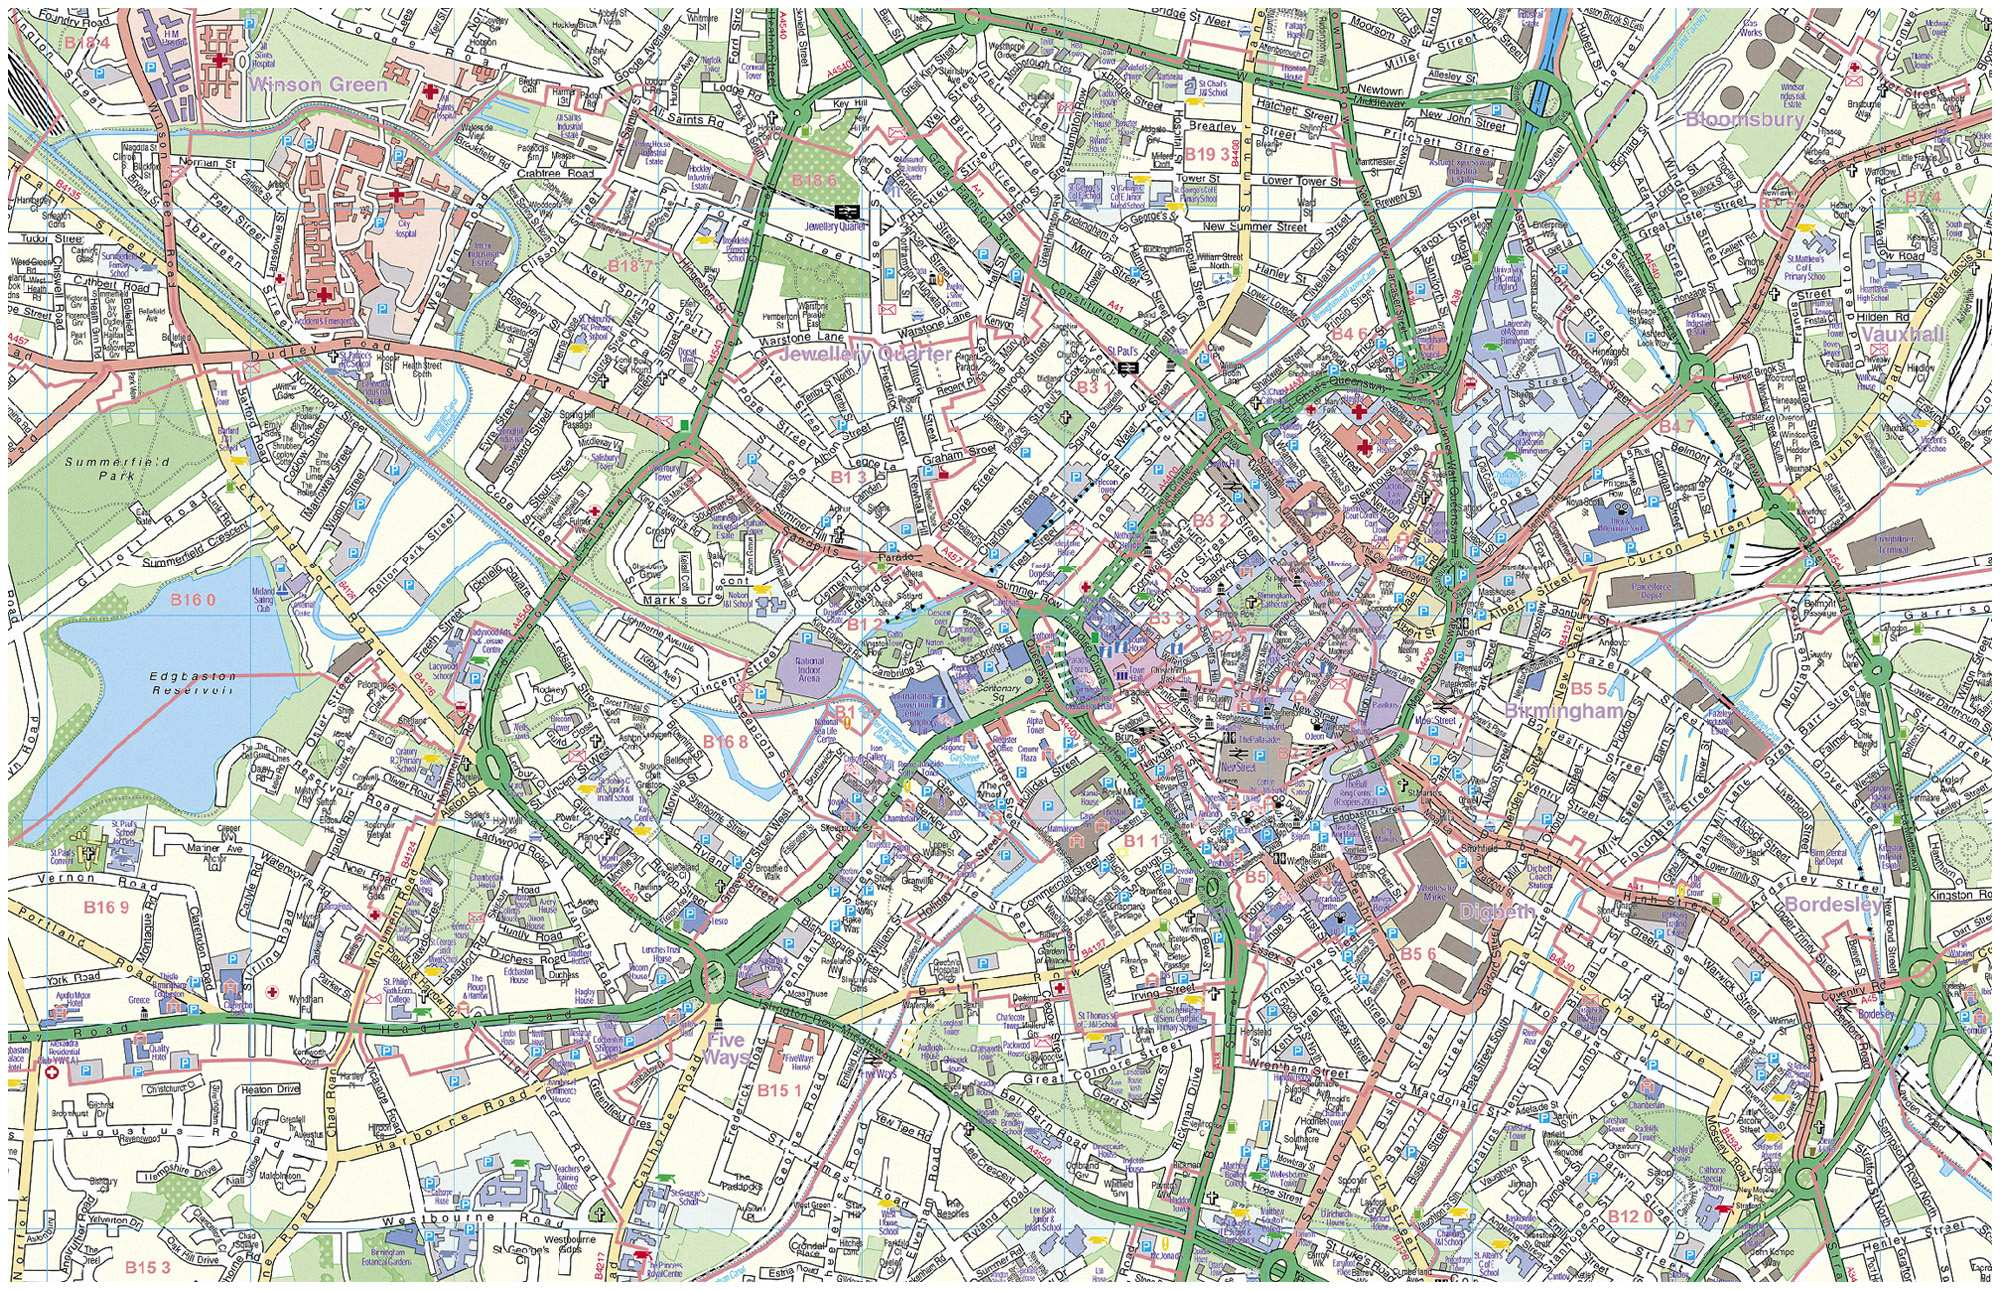 Large Birmingham Maps For Free Download And Print